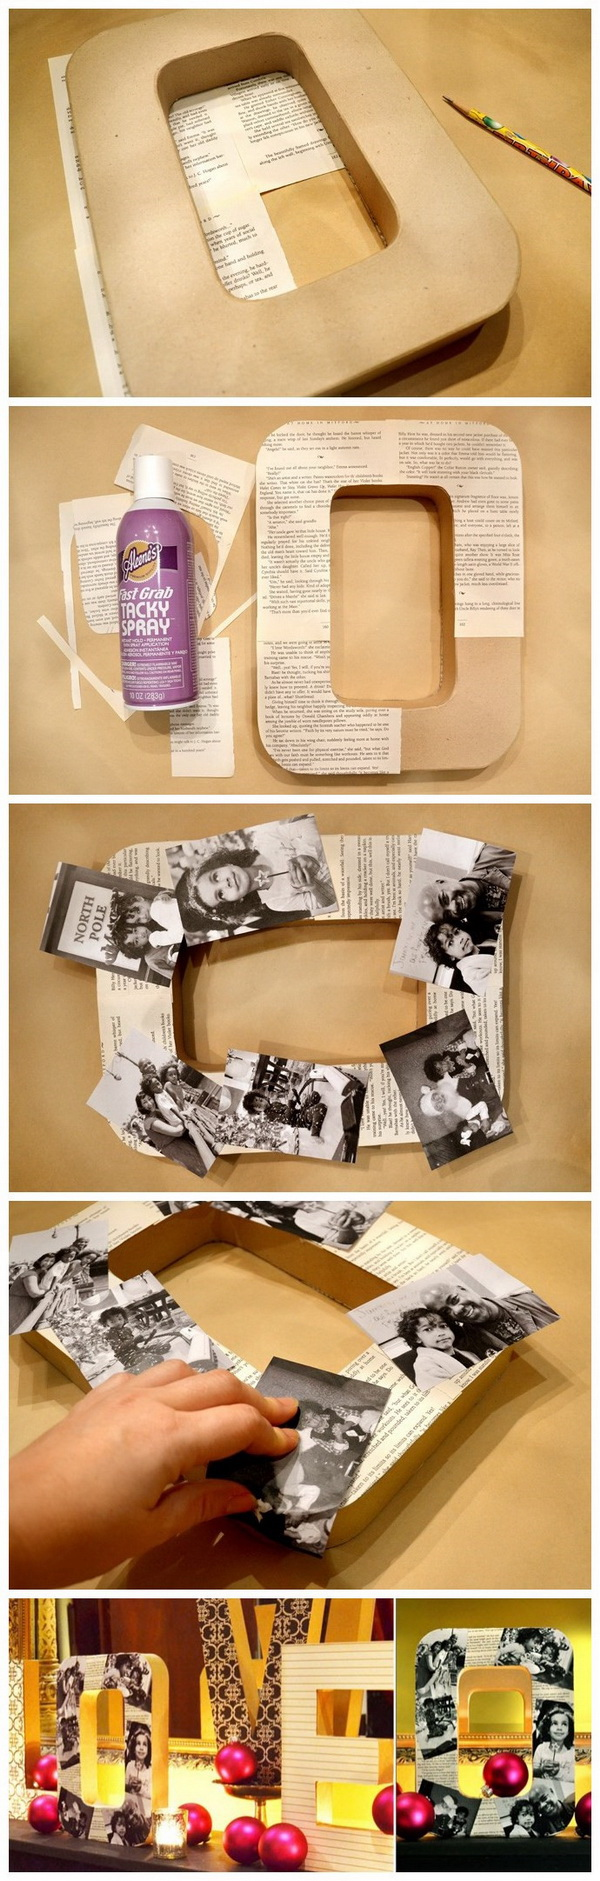 DIY Decorative Photo Letters. Customize the cardboard letters with vintage photos and it will make a strong statement for your home decor! Super easy and creative way to decor on budget!